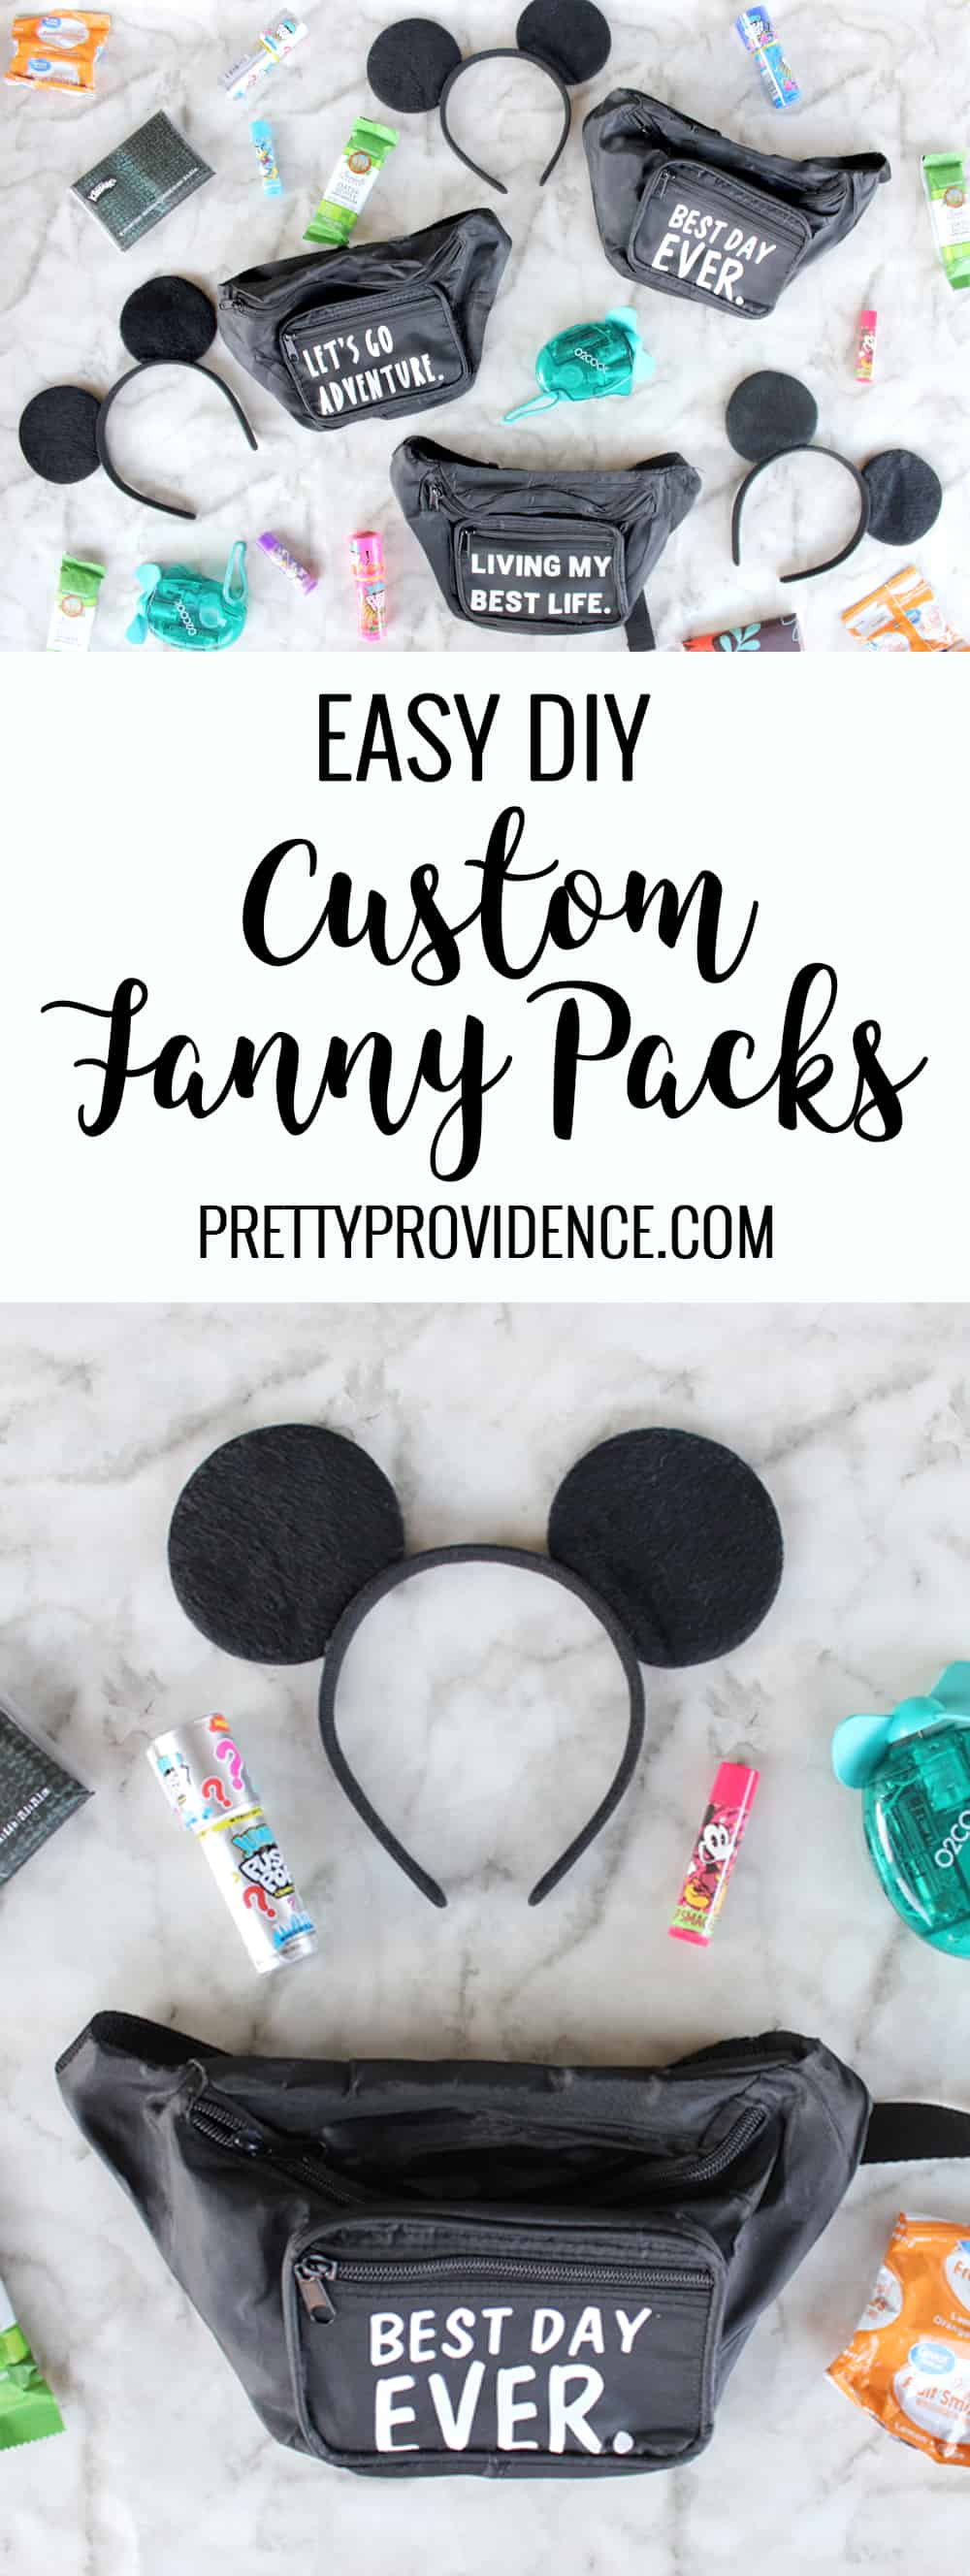 How adorable are these easy custom fanny packs made with the Cricut Maker?! I made them for my kids to bring to Disneyland and they LOVED them! They still use them all the time!